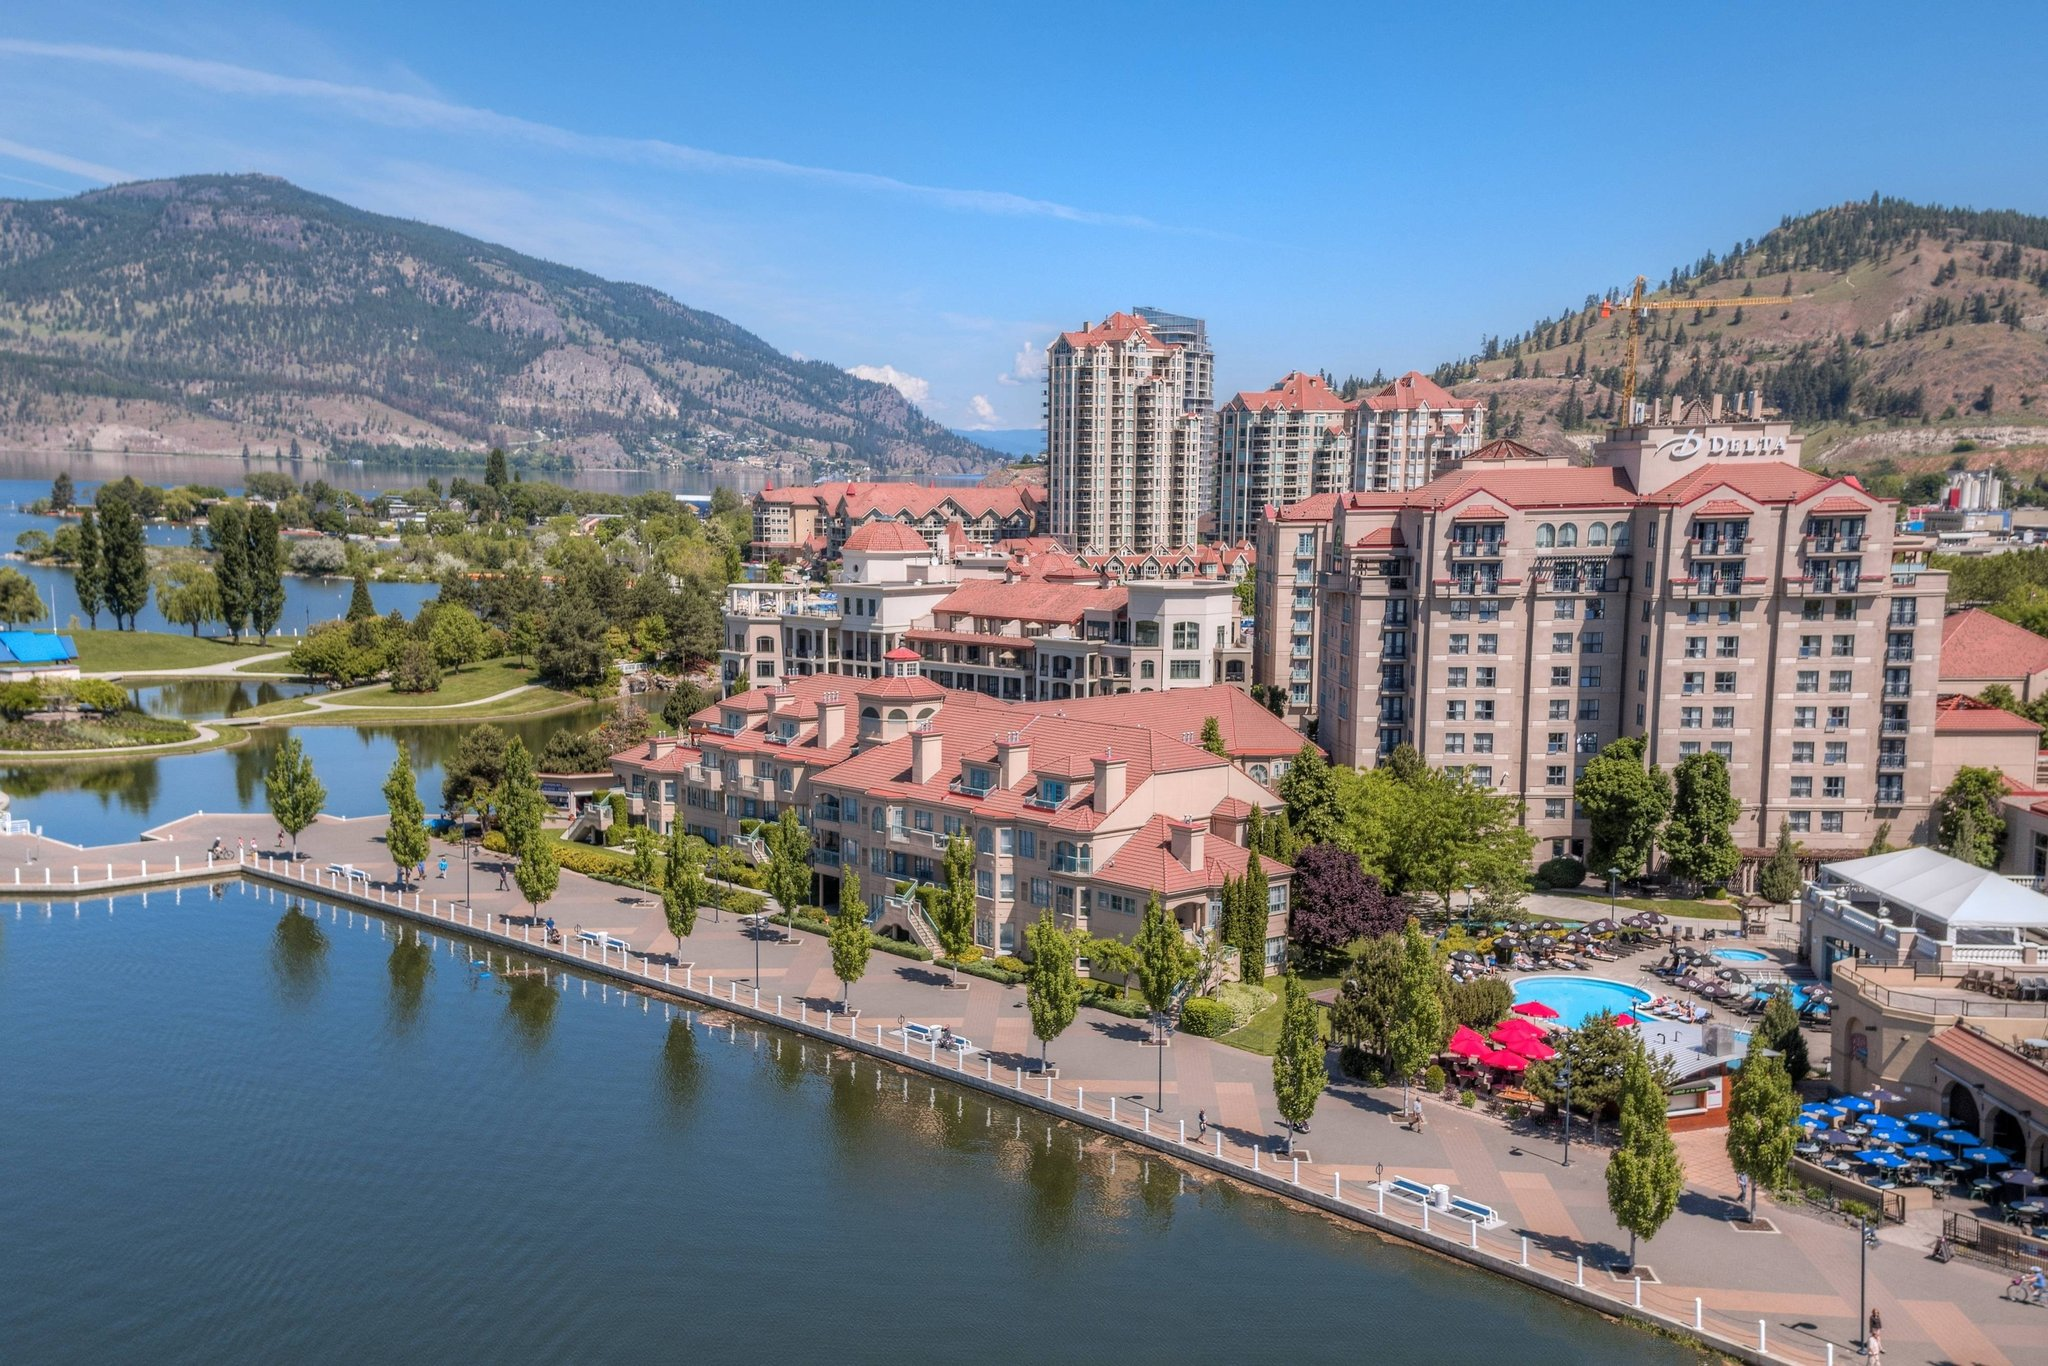 Delta Grand Okanagan Resort & Conf Ctr